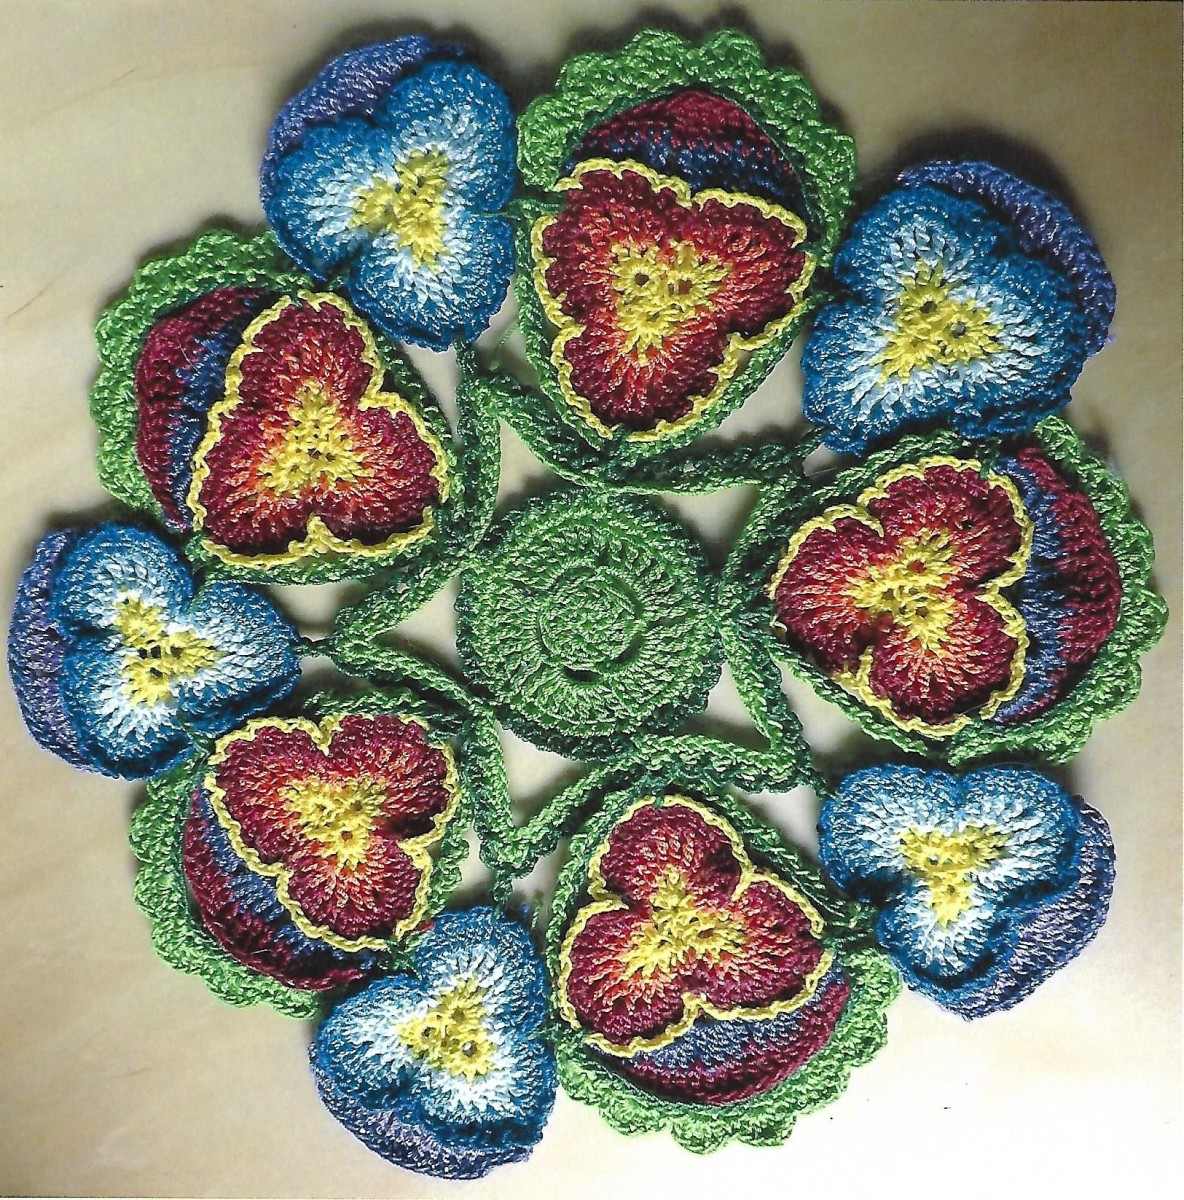 Crochet Doily Pattern: A Circle of Pansies